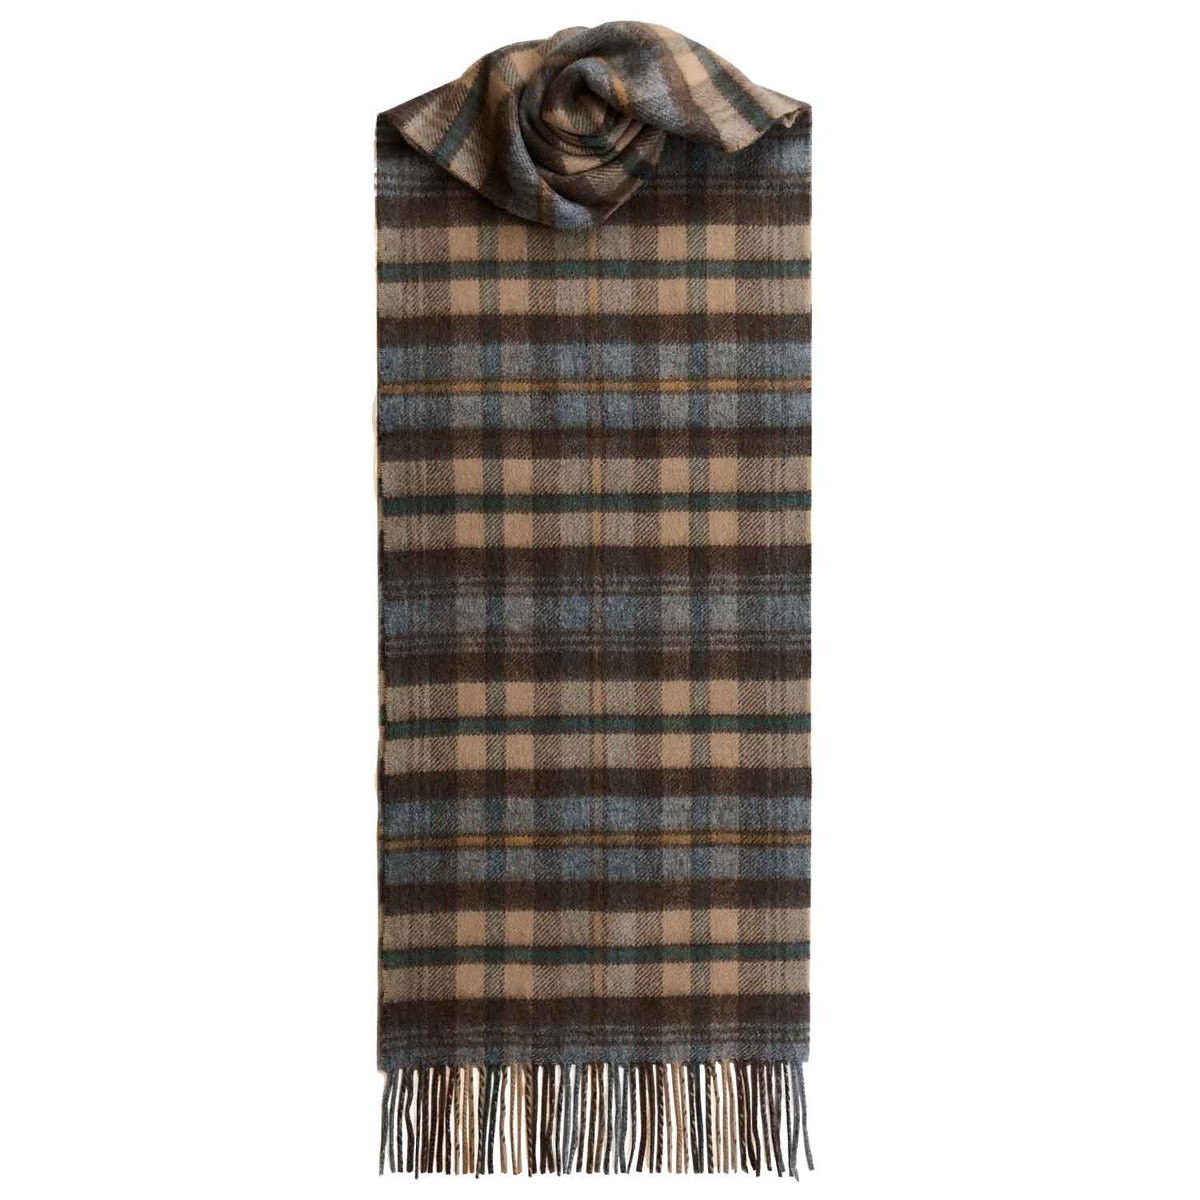 Lomond Cashmere | Brown Grey | Check Cashmere Scarf With Fringes | Made in Scotland | Shop at The Cashmere Choice | London